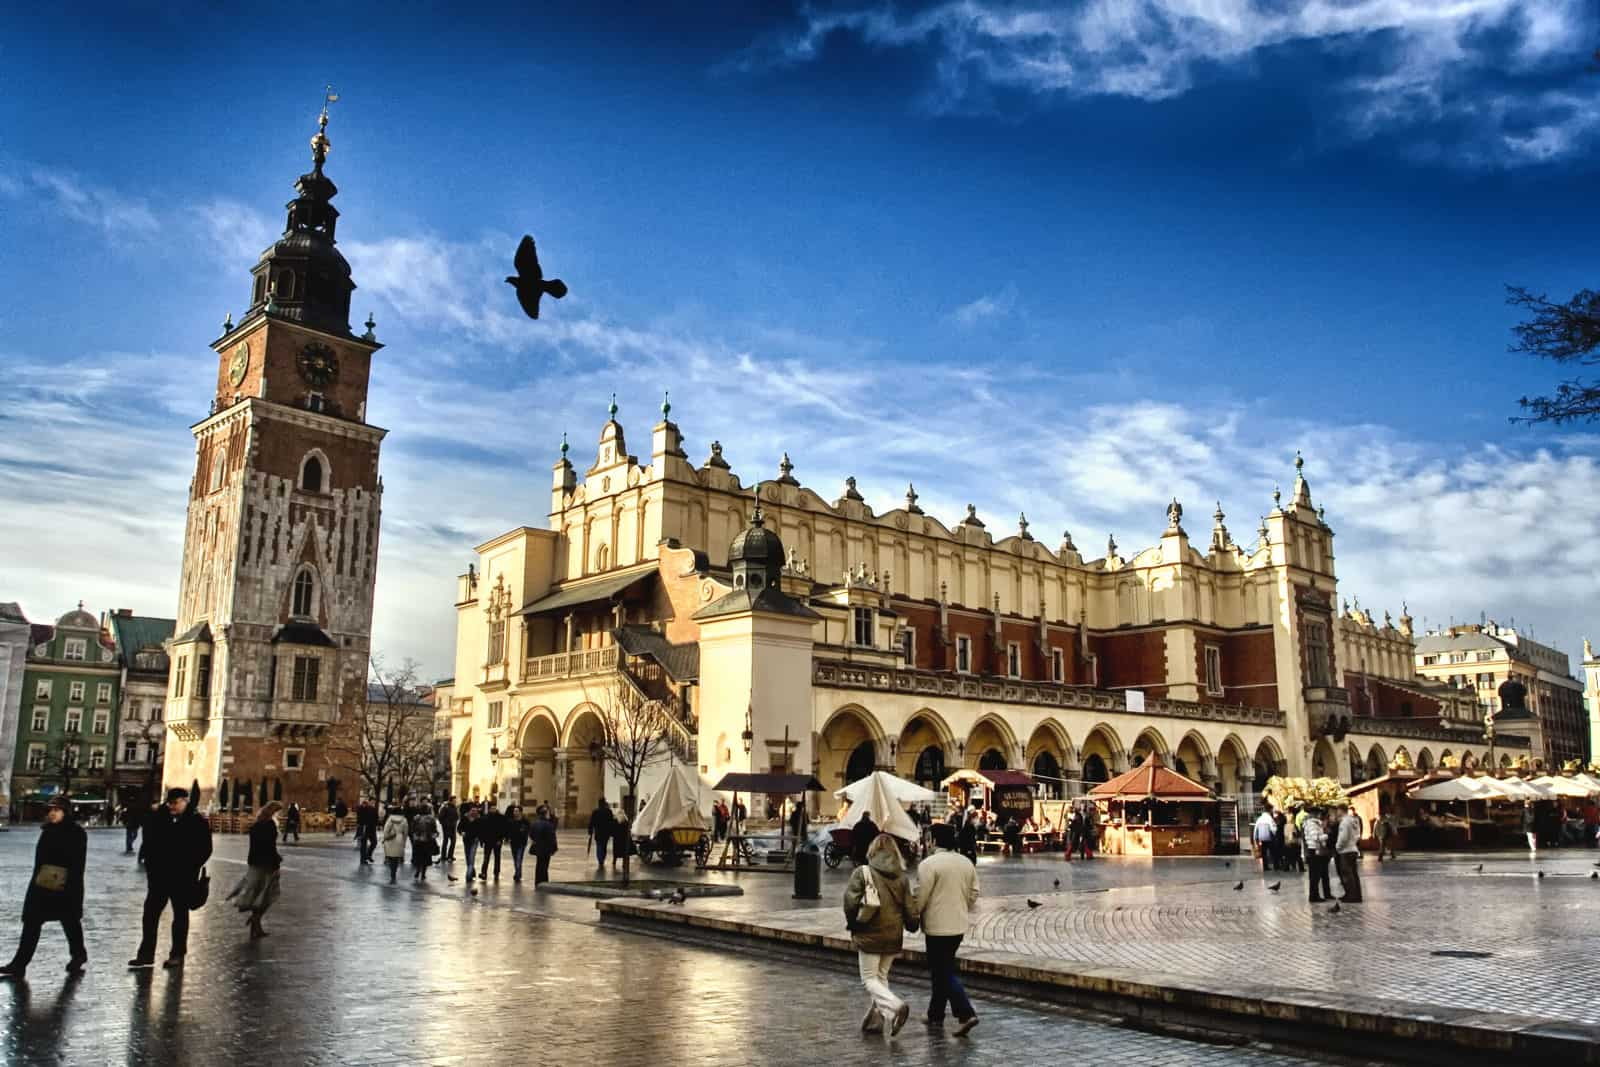 Market Square in Old Town, Krakow, Poland